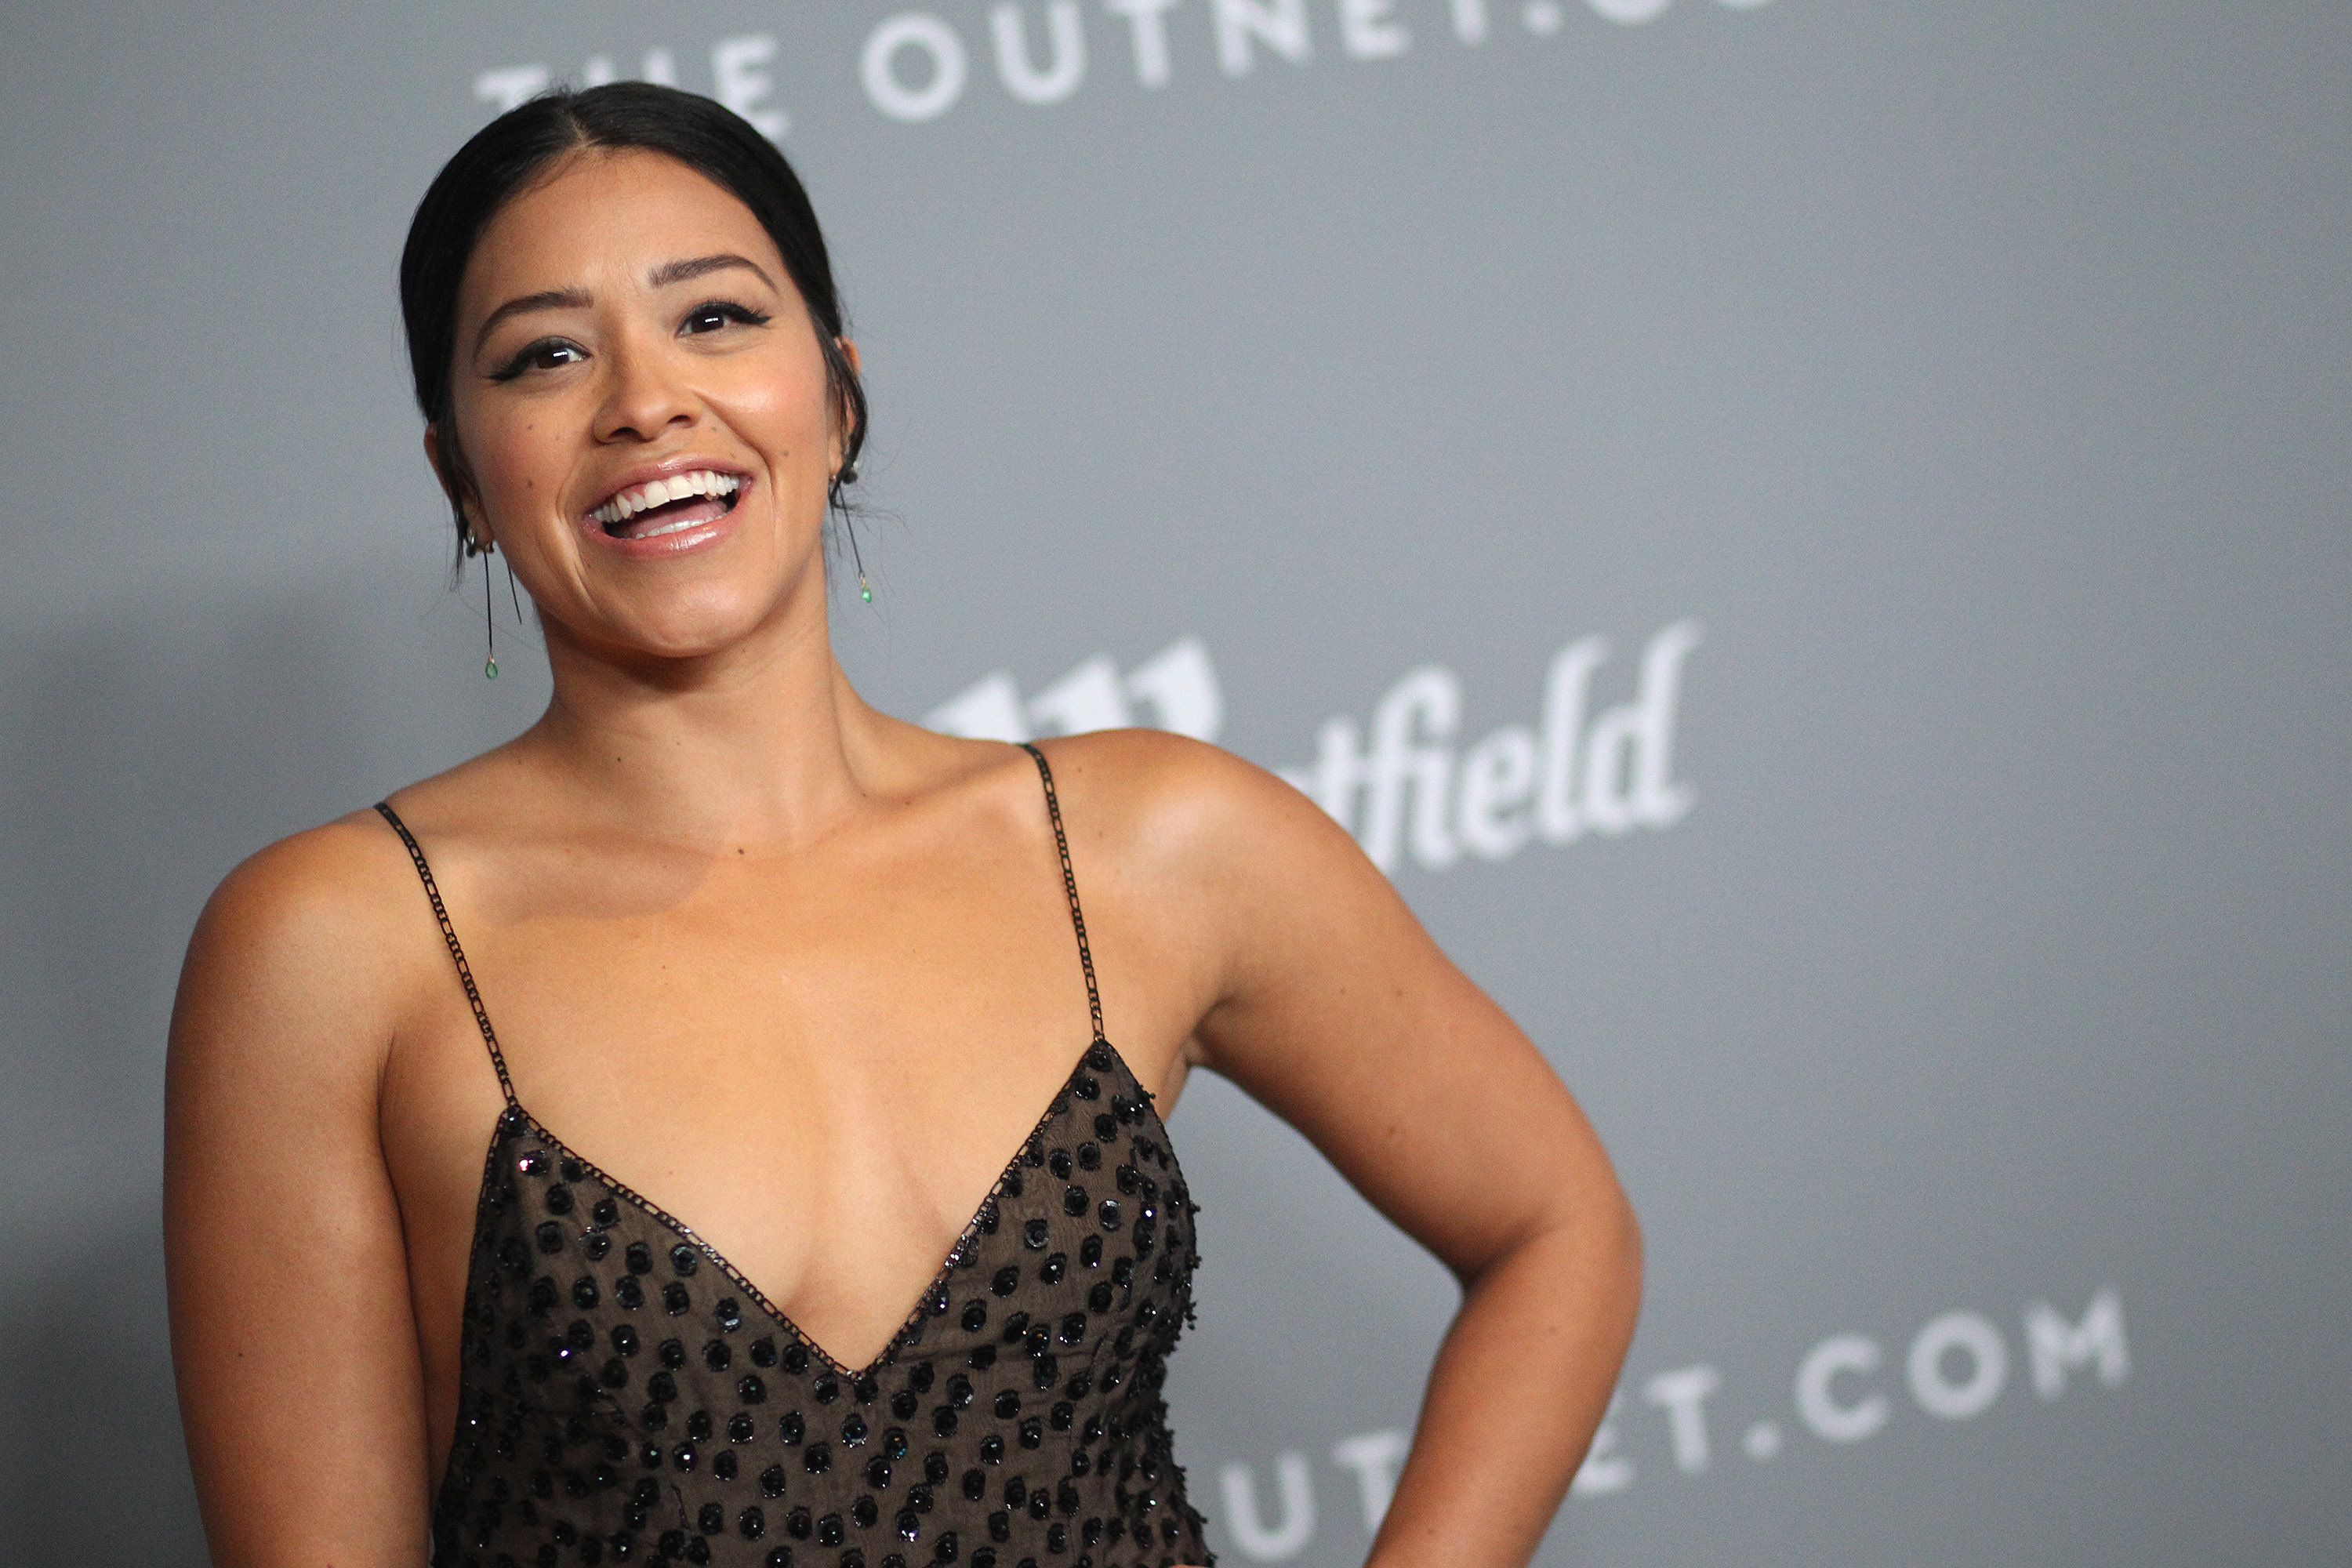 Gina Rodriguez Gives Clues About Final Season Of 'Jane The